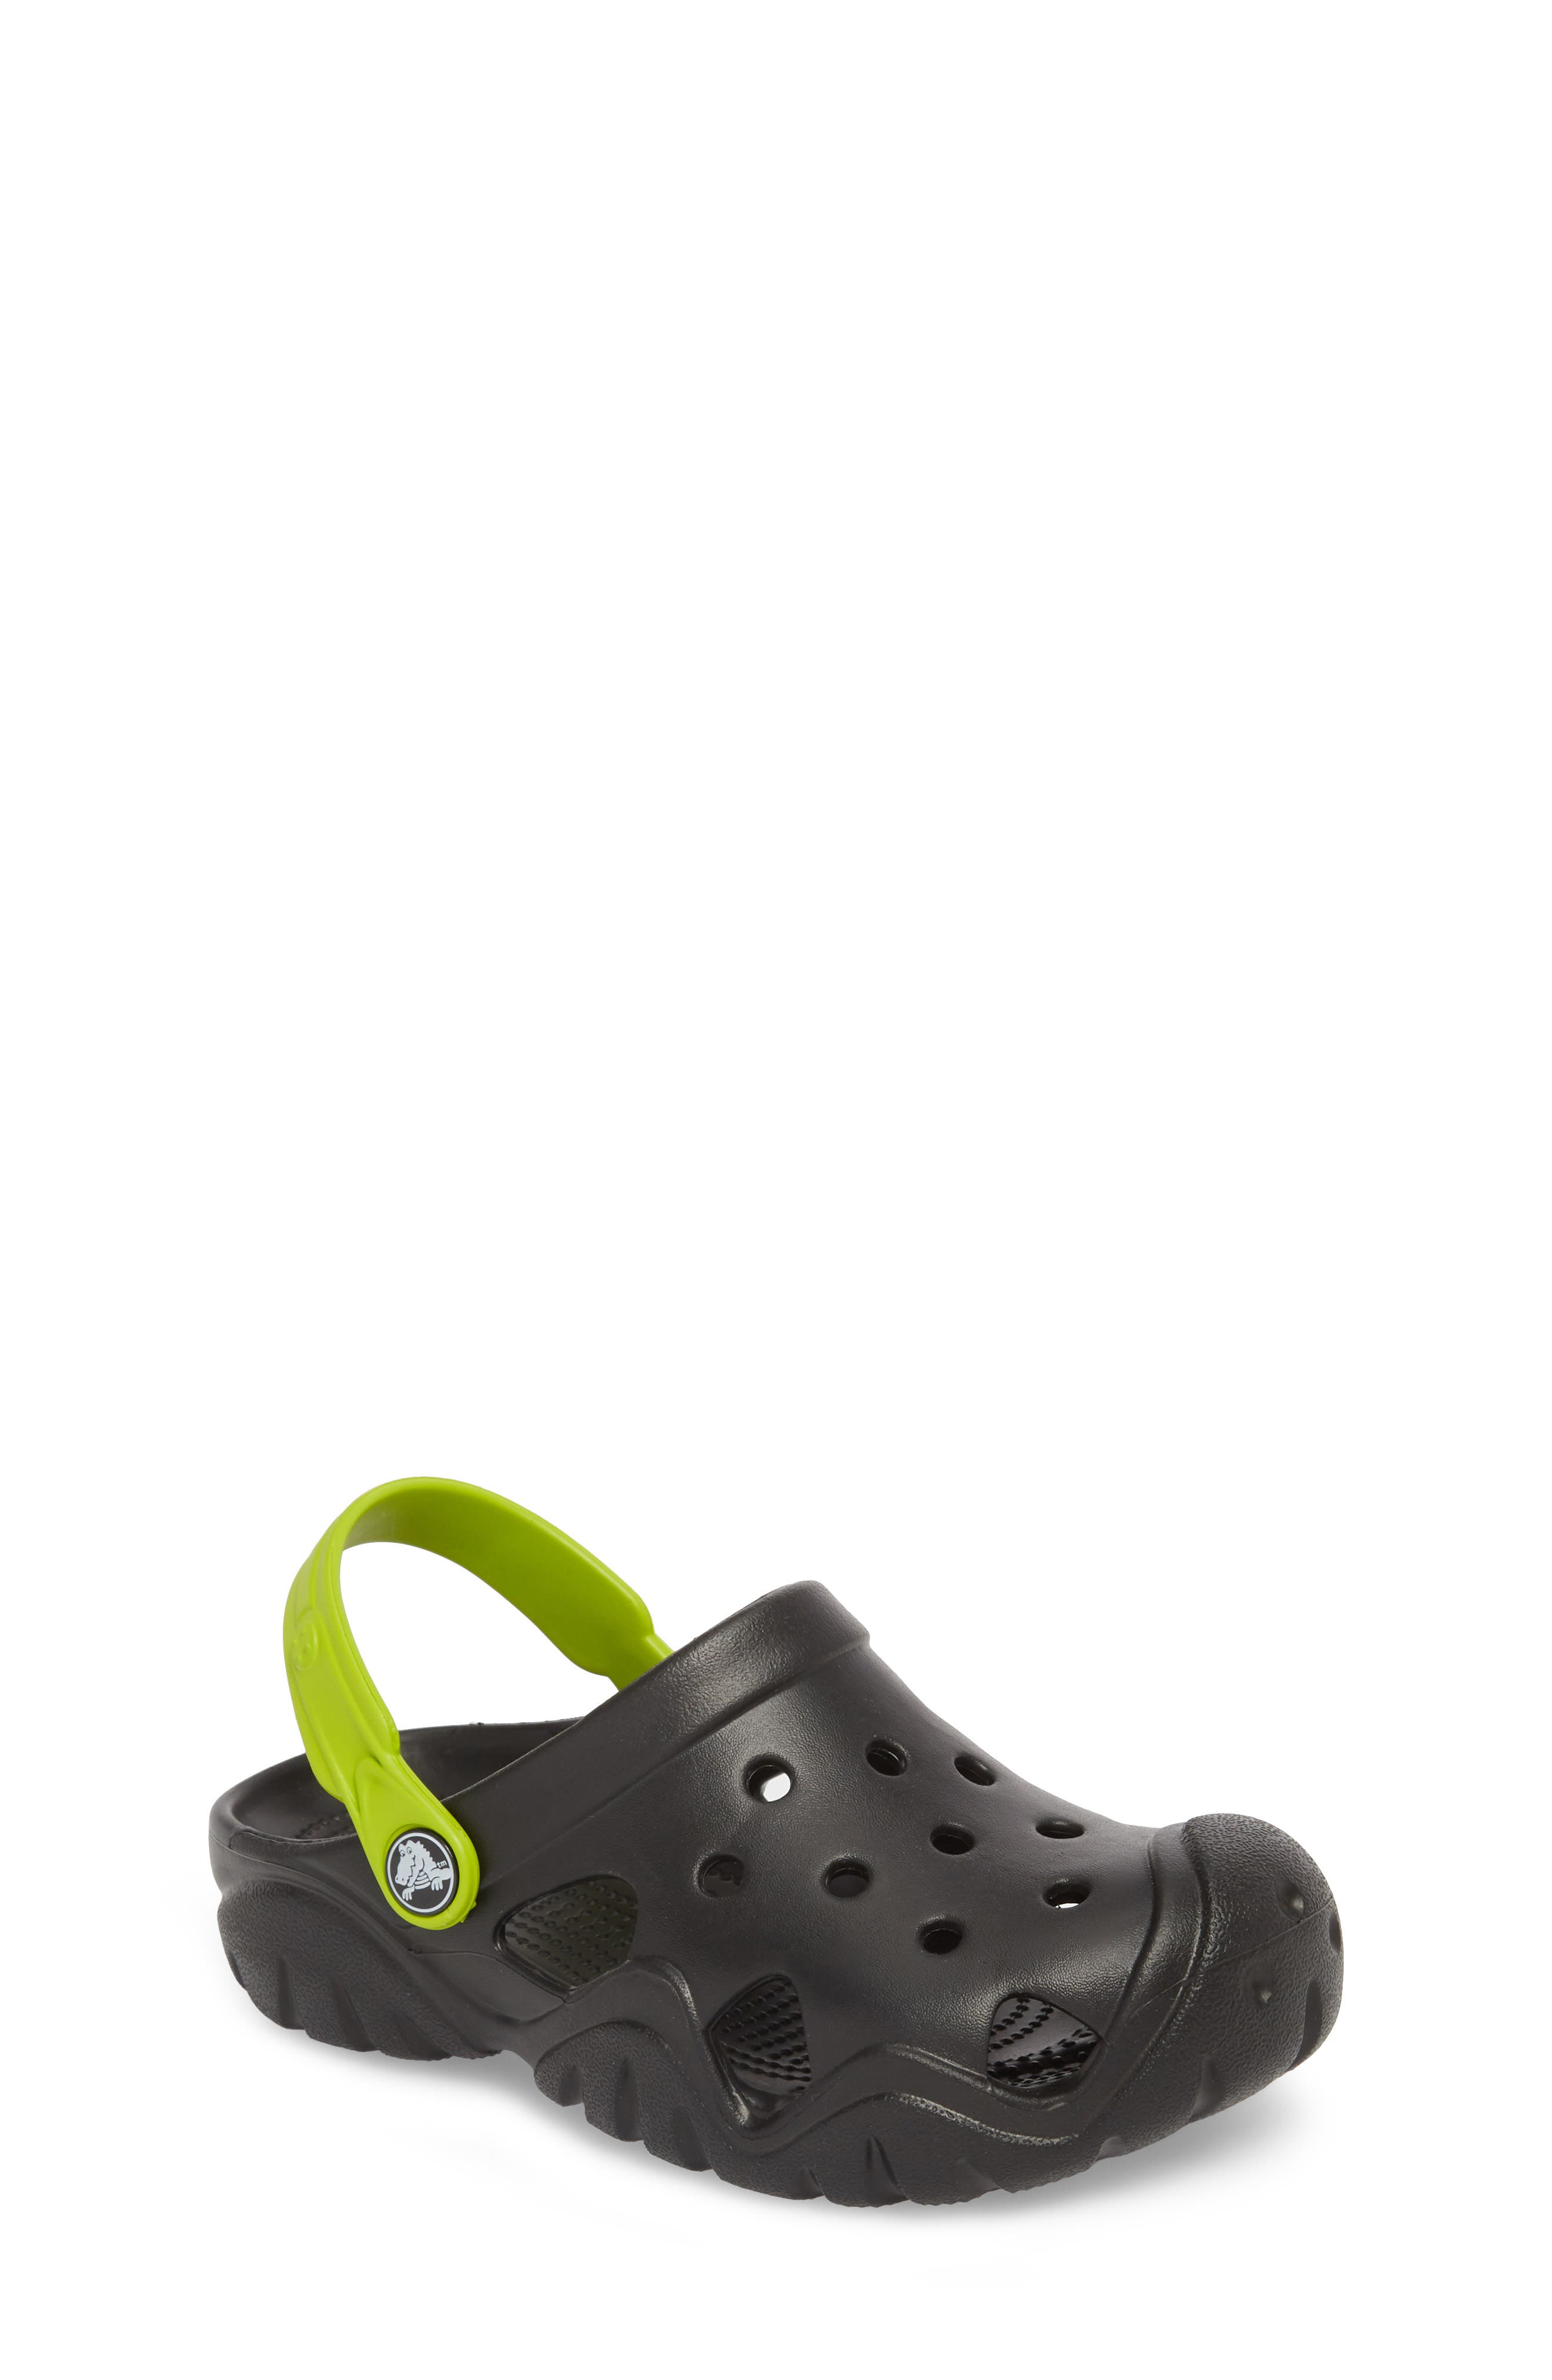 Swiftwater Clogs,                         Main,                         color, 001